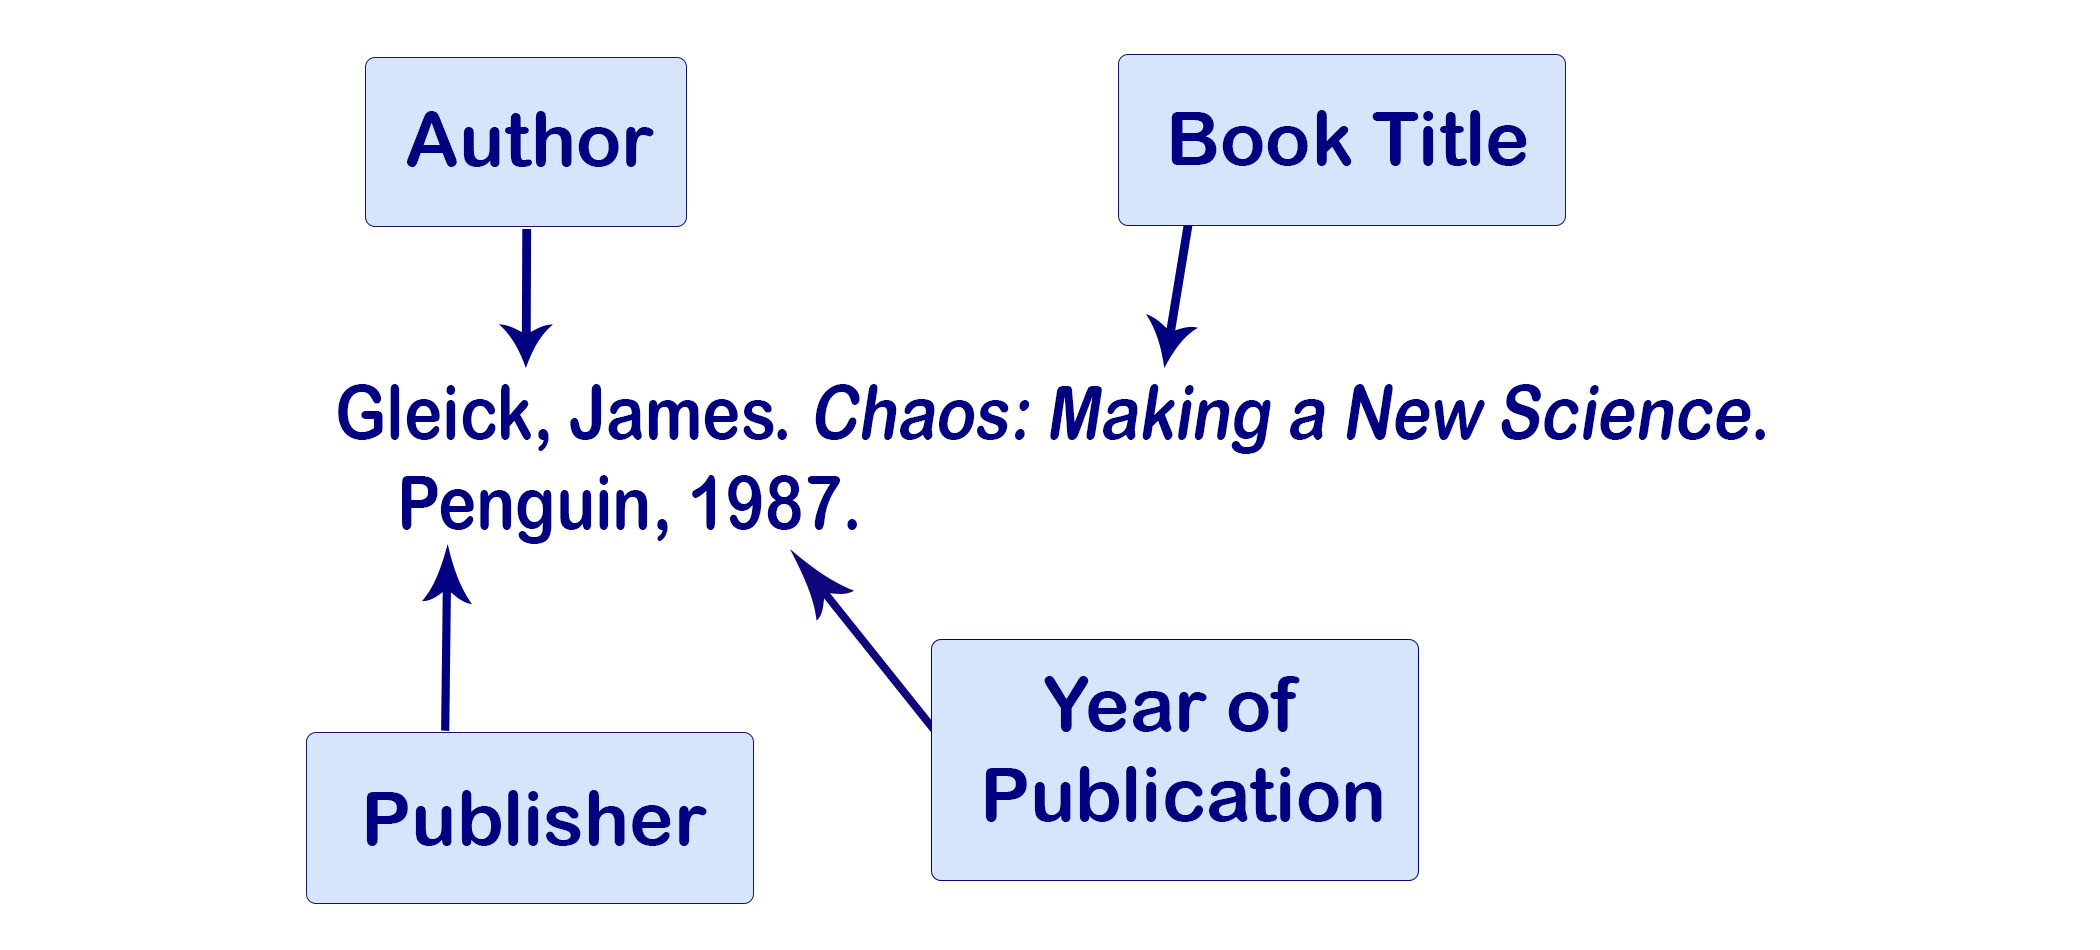 Example of an MLA citation of a book with one author